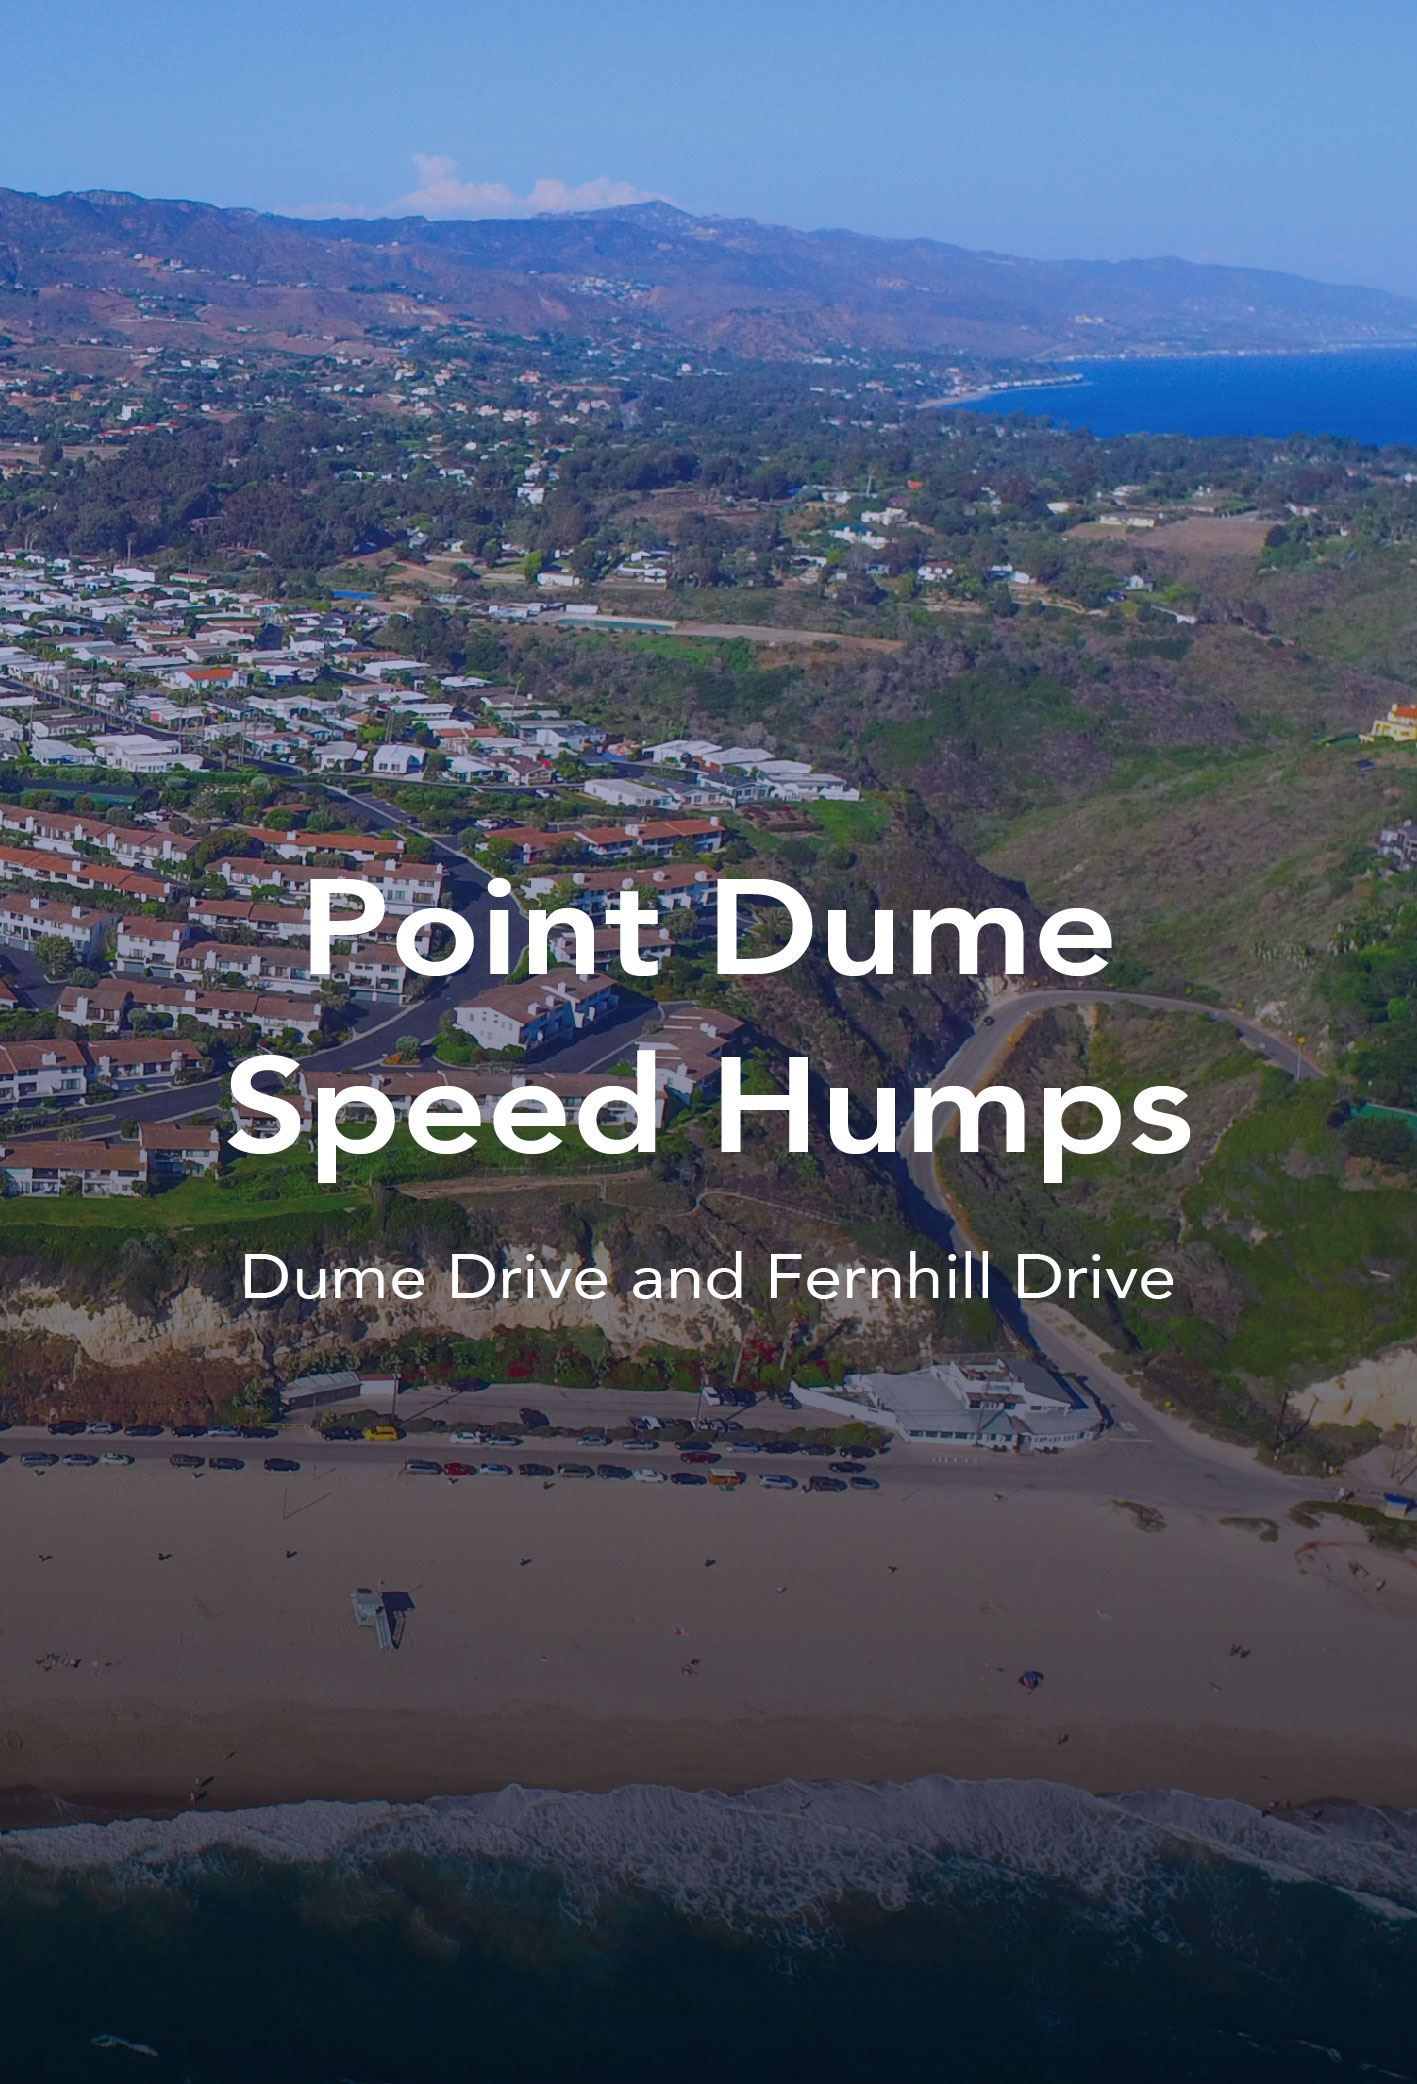 Point dume speed humps newsflash-02